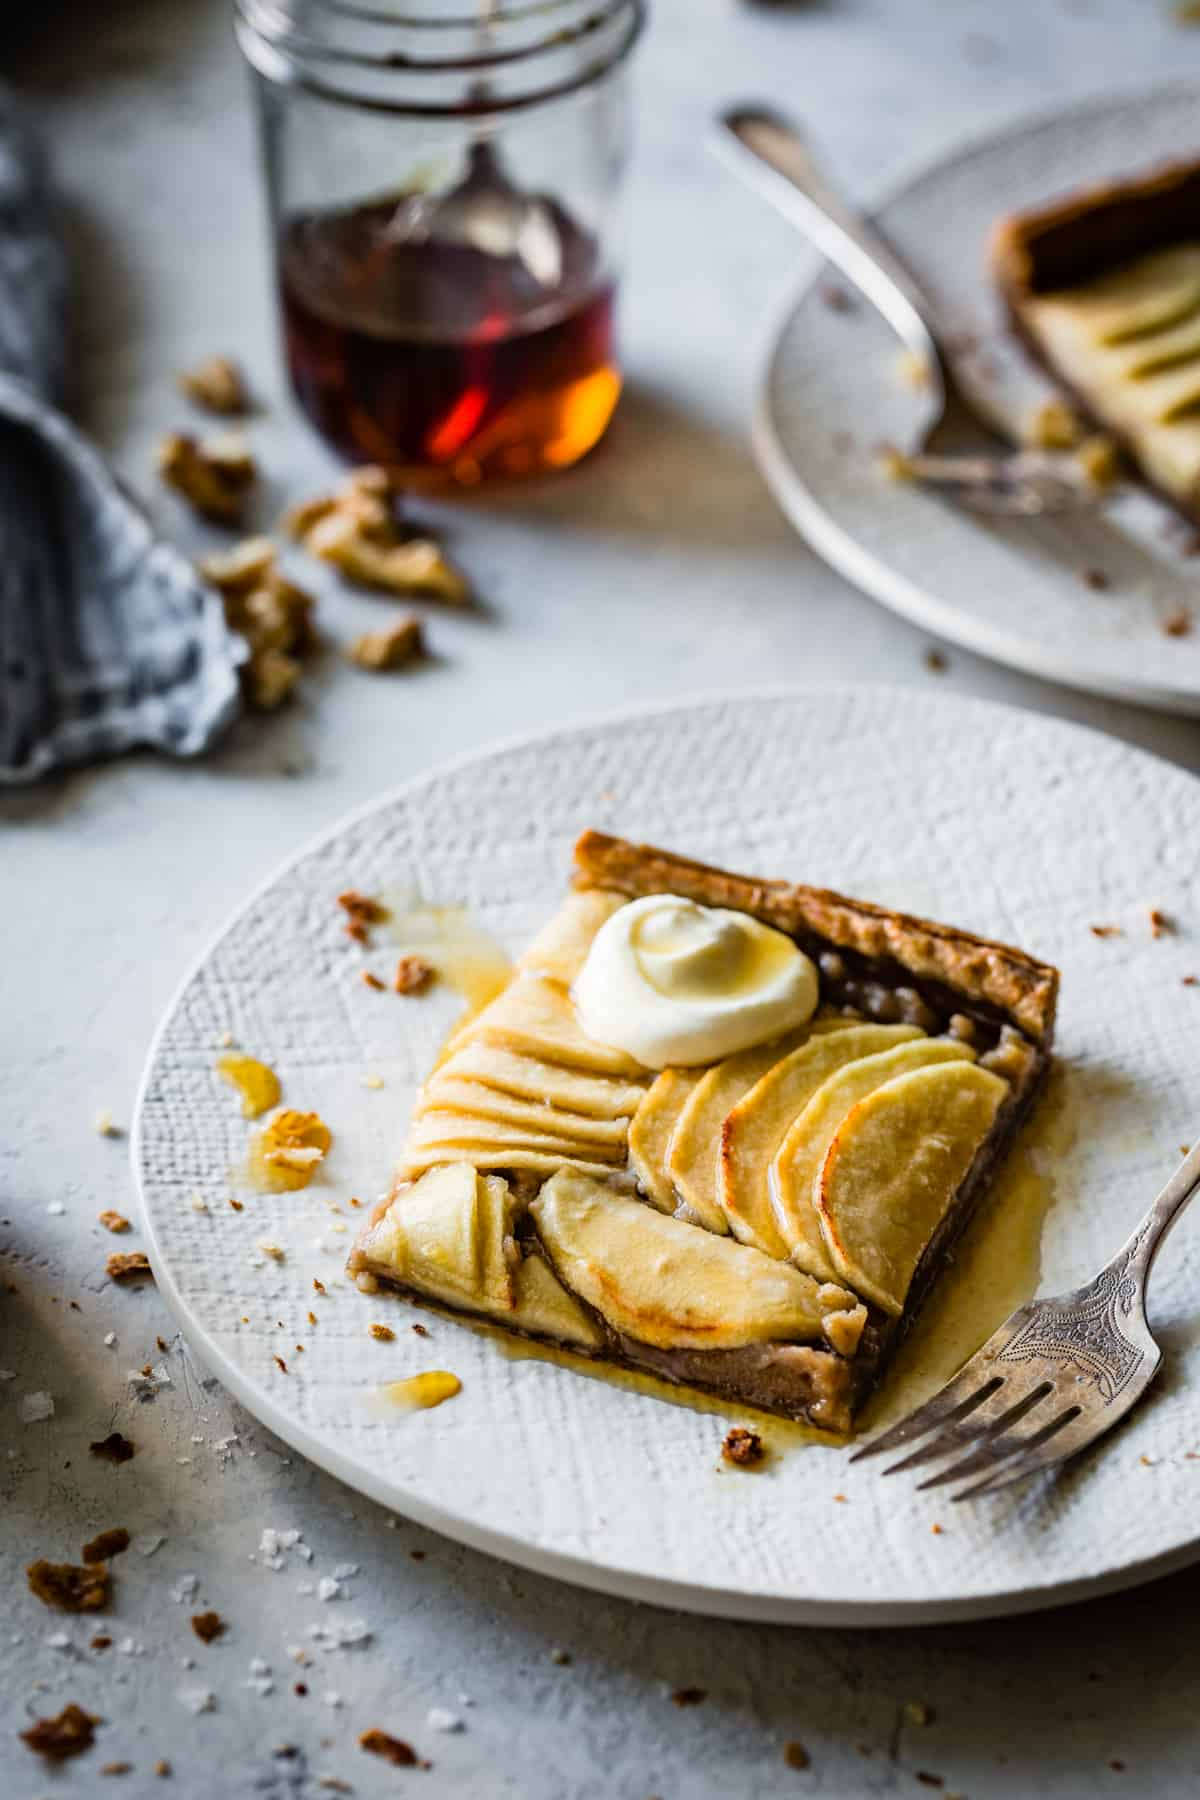 slice of Buckwheat Apple Galette with Maple Walnut Frangipane {gluten-free, refined sugar-free}